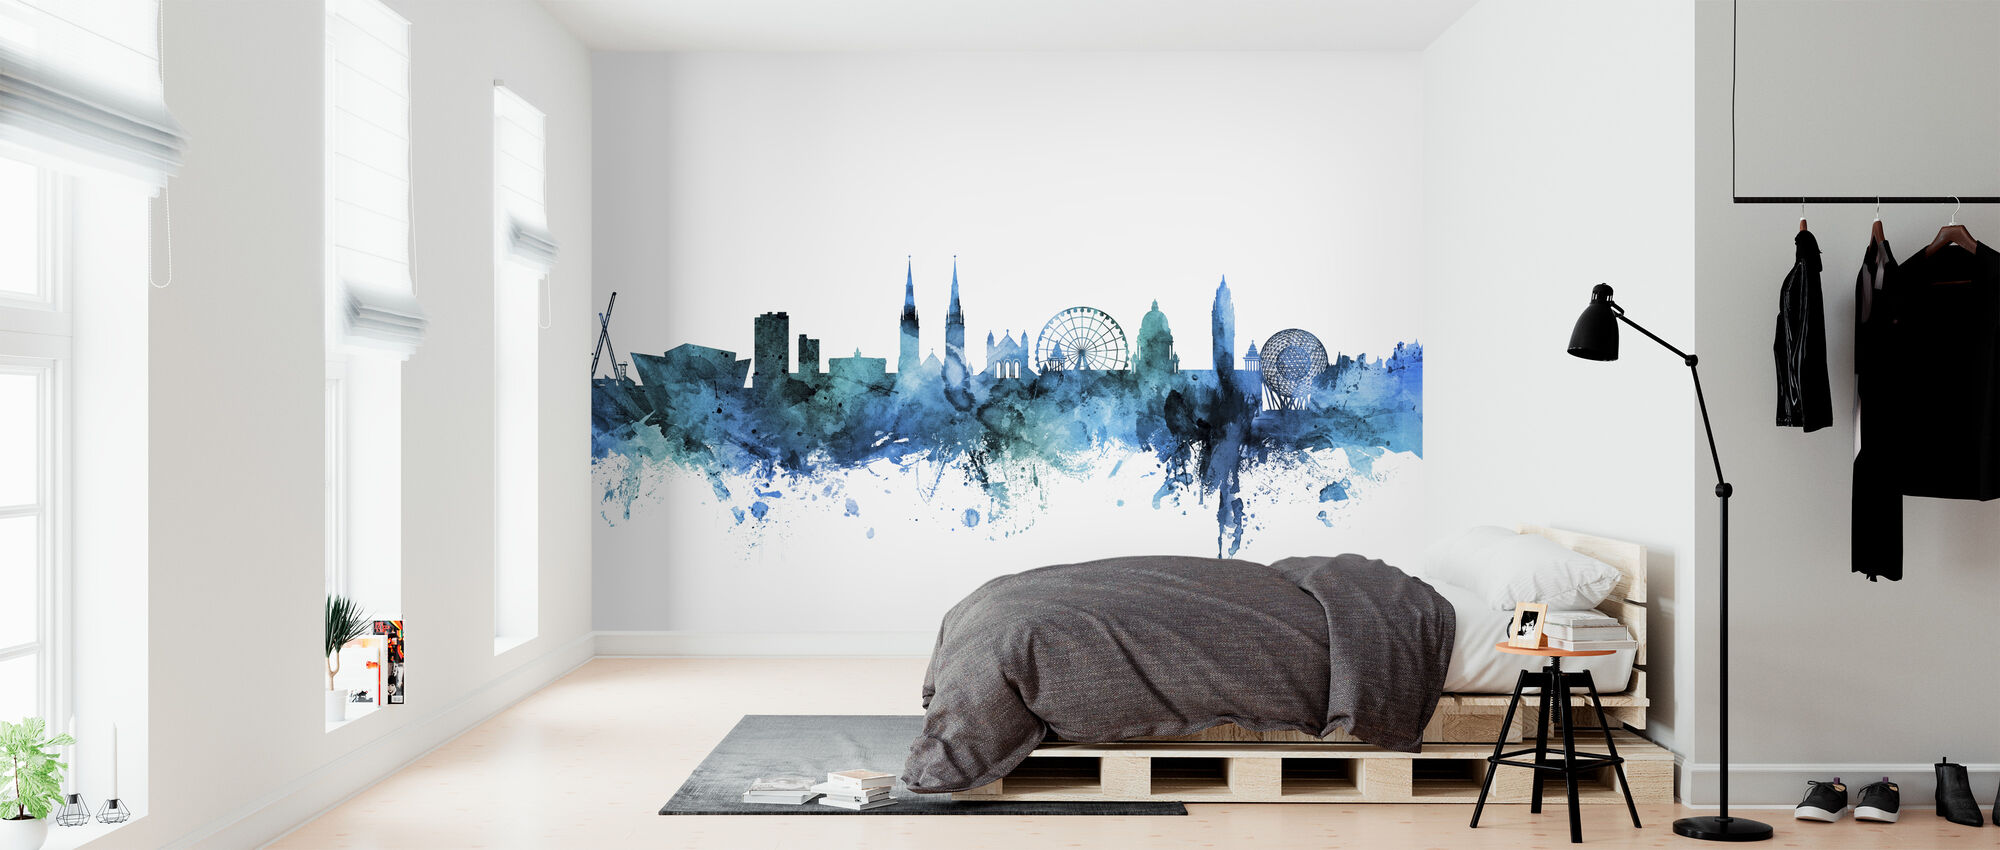 Belfast Northern Ireland Skyline - Wallpaper - Bedroom